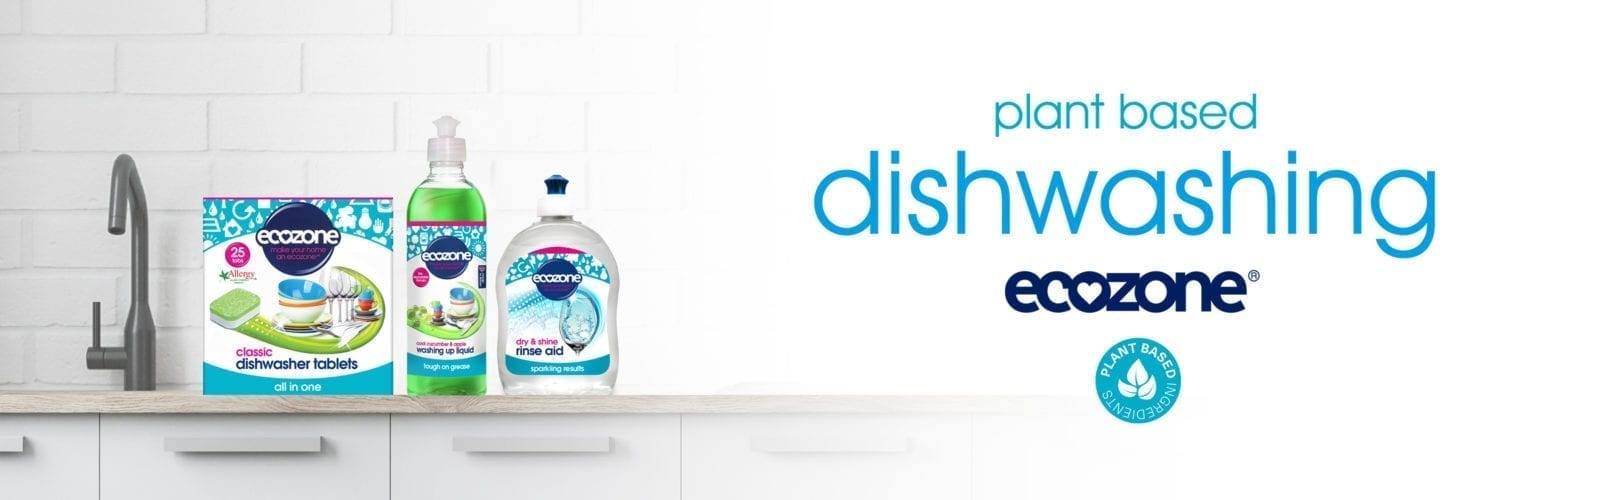 Natural Cleaning Products Dishwashing Ecozone